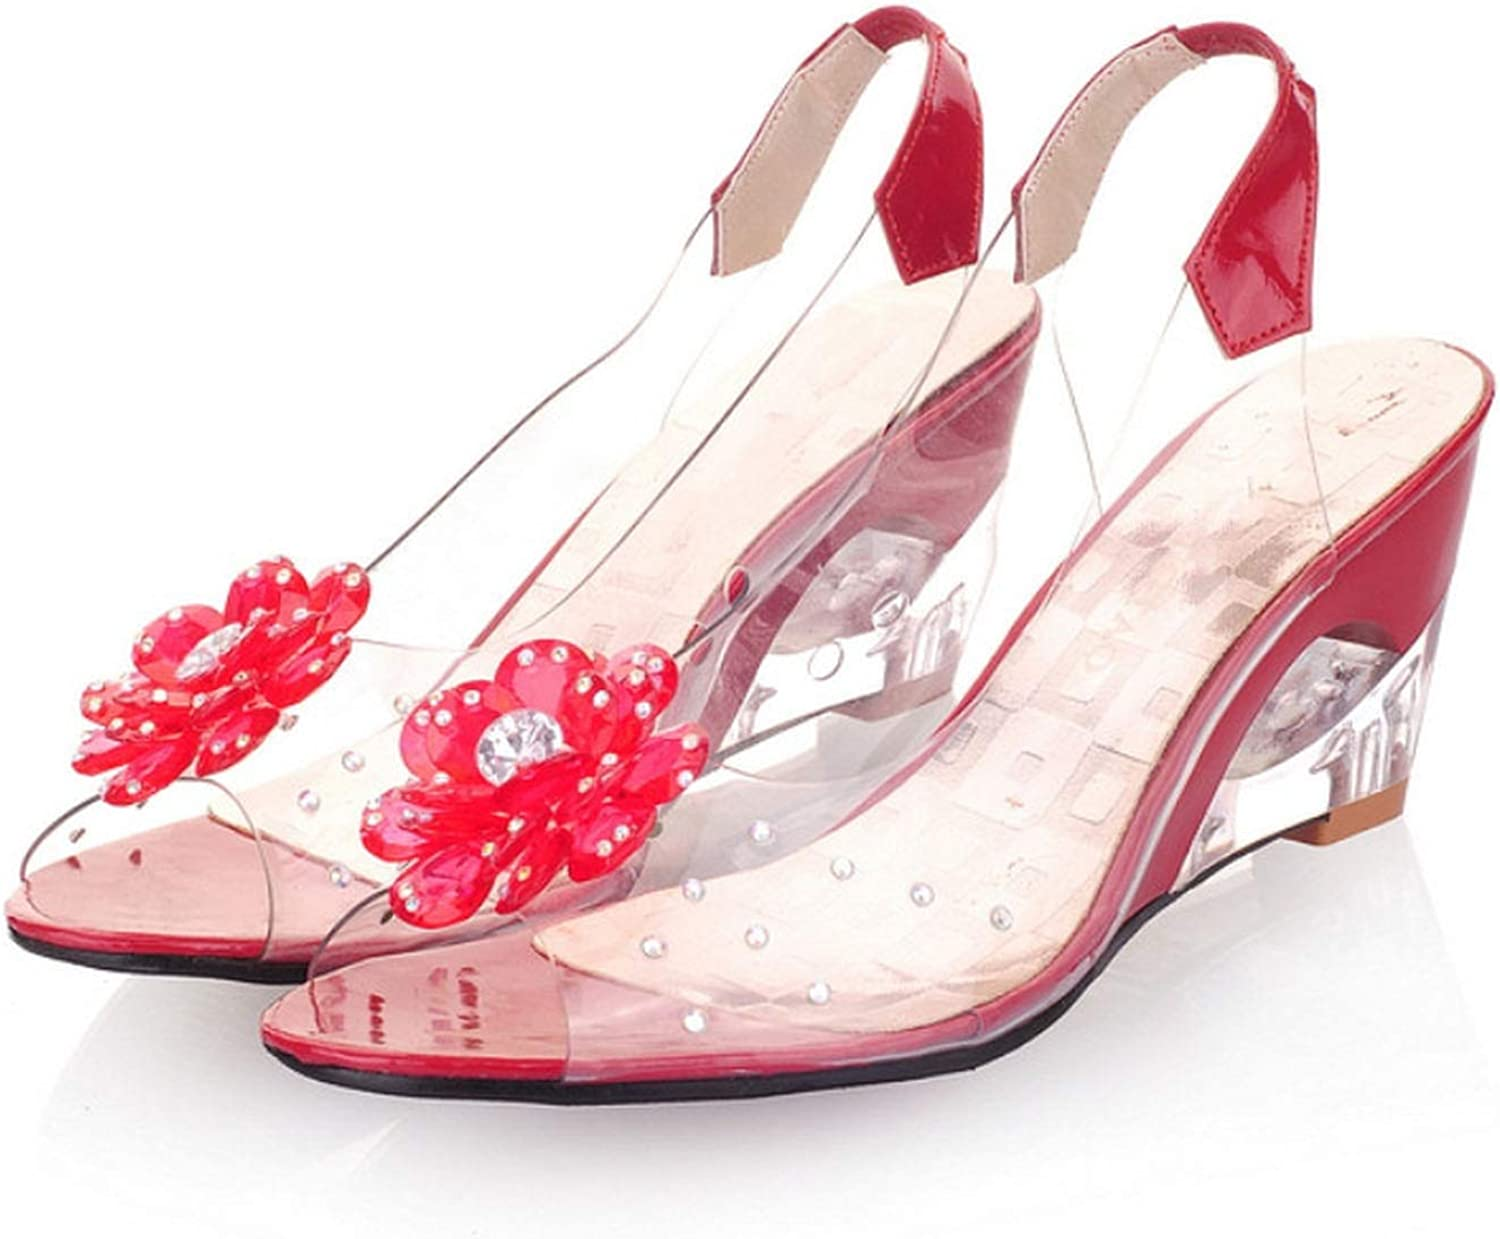 Lonely Store Summer Sandals Women Wedge Crystal Flowers Cutouts Med Heels Patent Leather Sandals Size 30-43